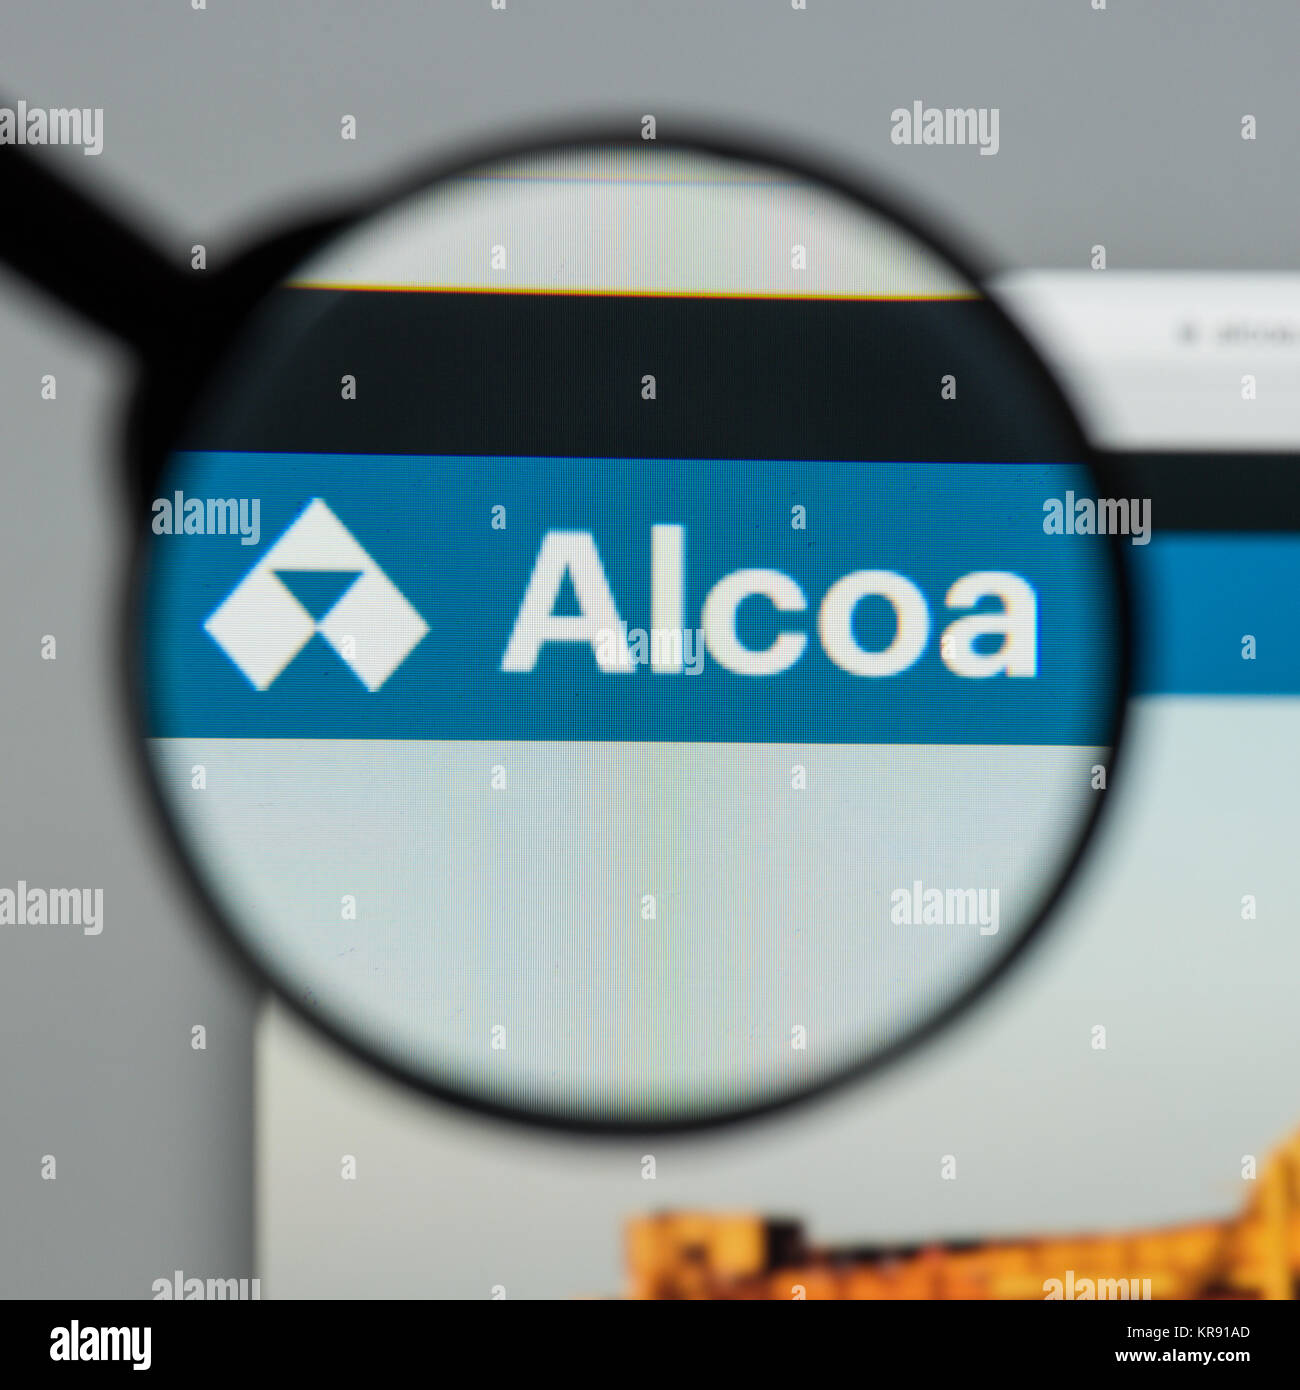 Alcoa Aluminum Corporation Stock Photos Alcoa Aluminum Corporation